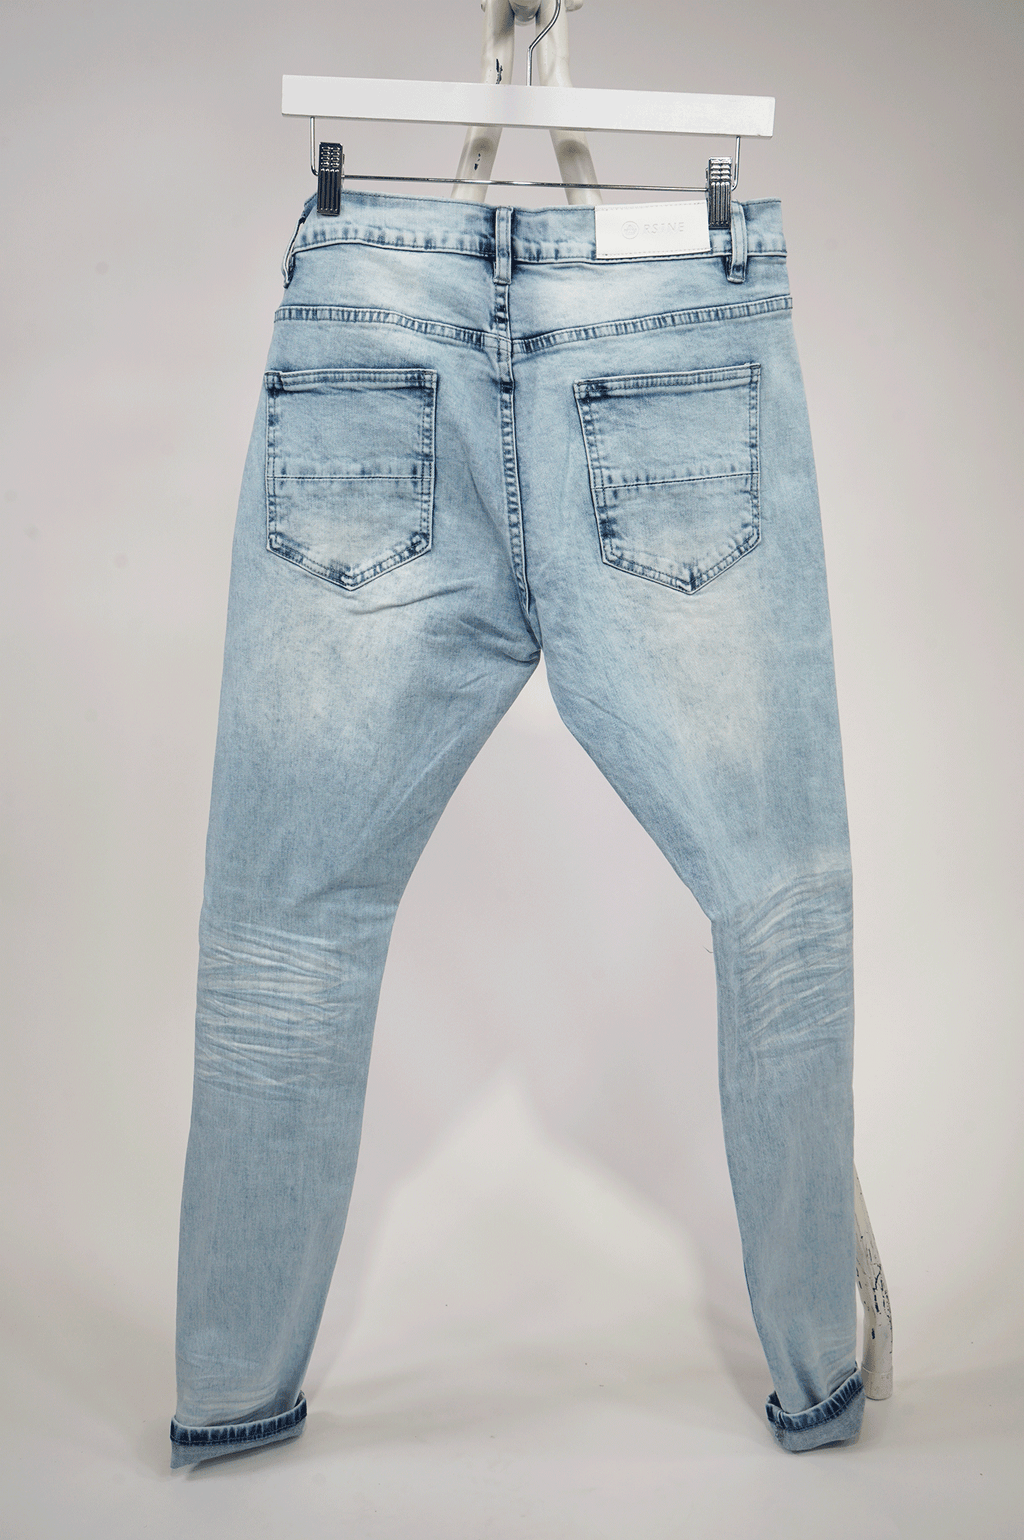 AAO FASHION MENS PATCHED PAINT SPLATER DENIM